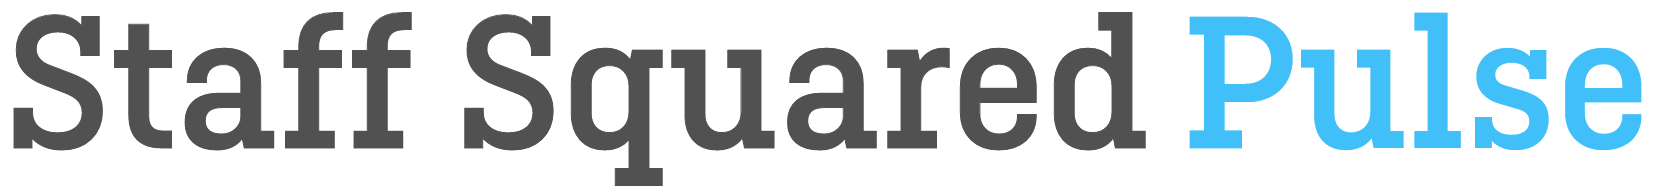 Staff Squared Pulse Logotype